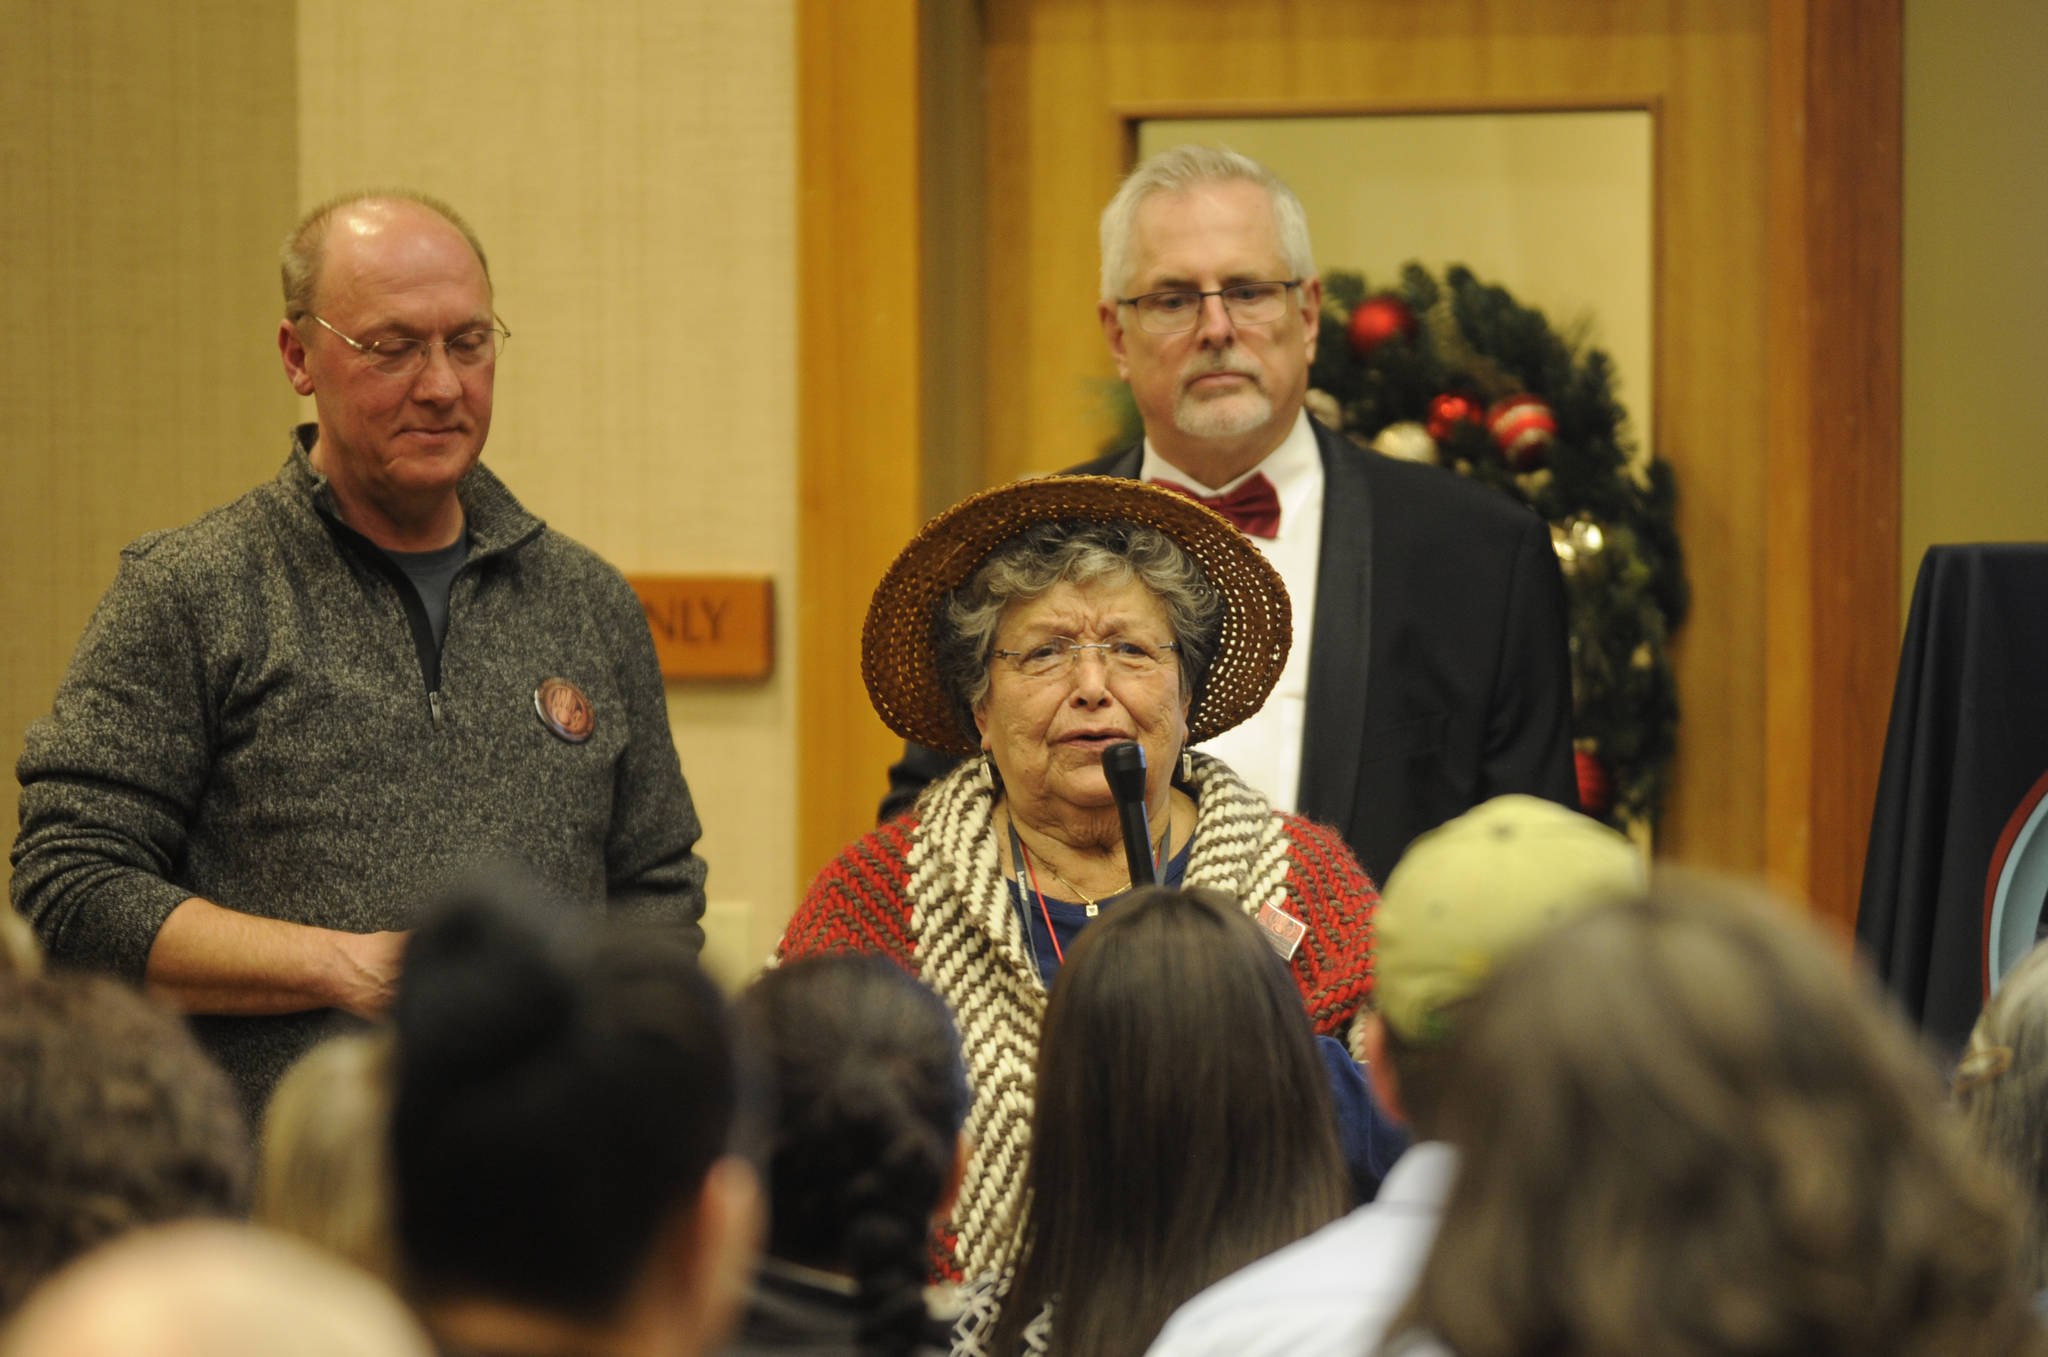 Jamestown S'Klallam Tribe storyteller Elaine Grinnell speaks at the tribe's MAT clinic design unveiling in Sequim. Behind her are, left, Bud Turner, manager of the Jamestown S'Klallam carving shed and Brent Simcosky, the tribe's health services director. Michael Dashiell/Olympic Peninsula News Group